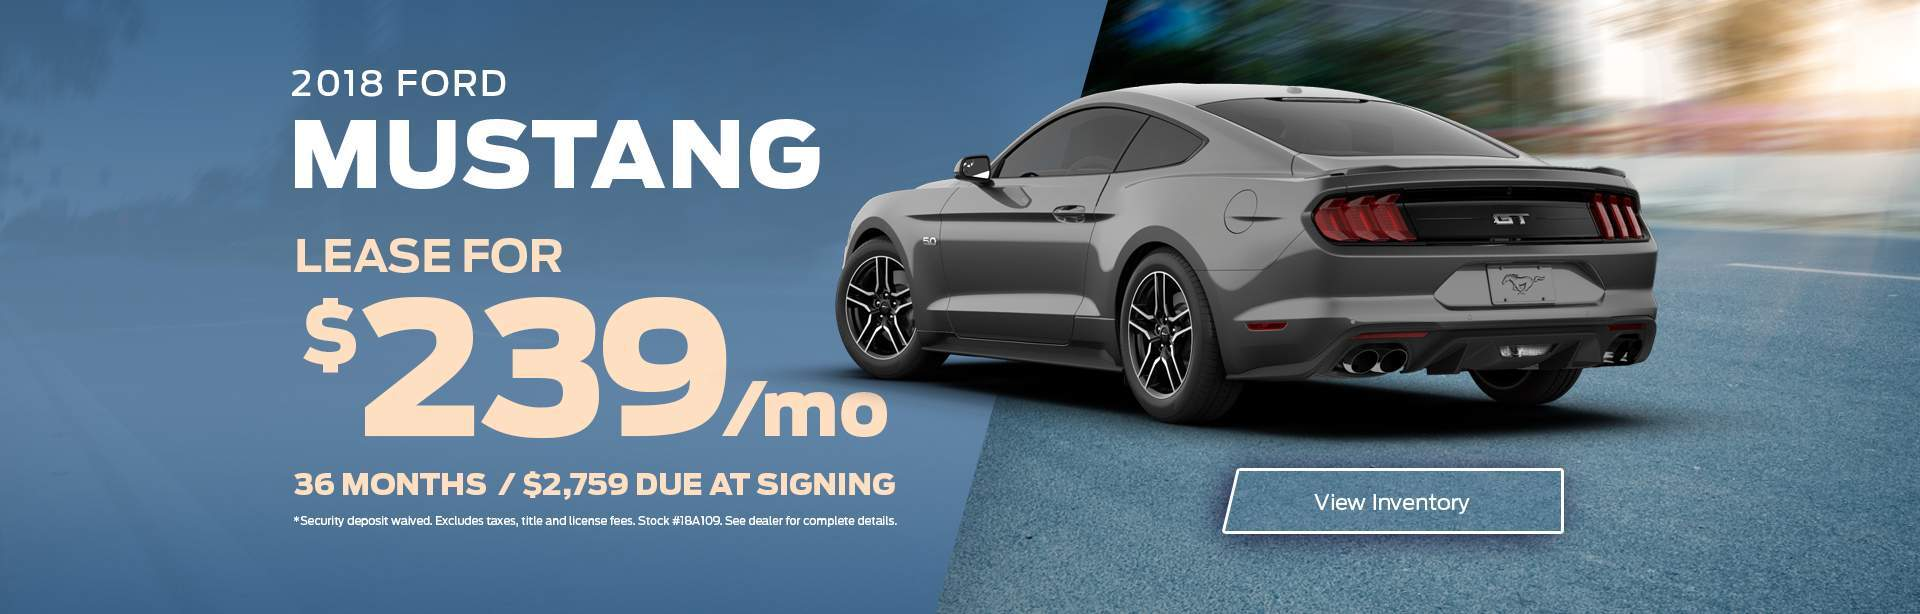 2018 Mustang Lease